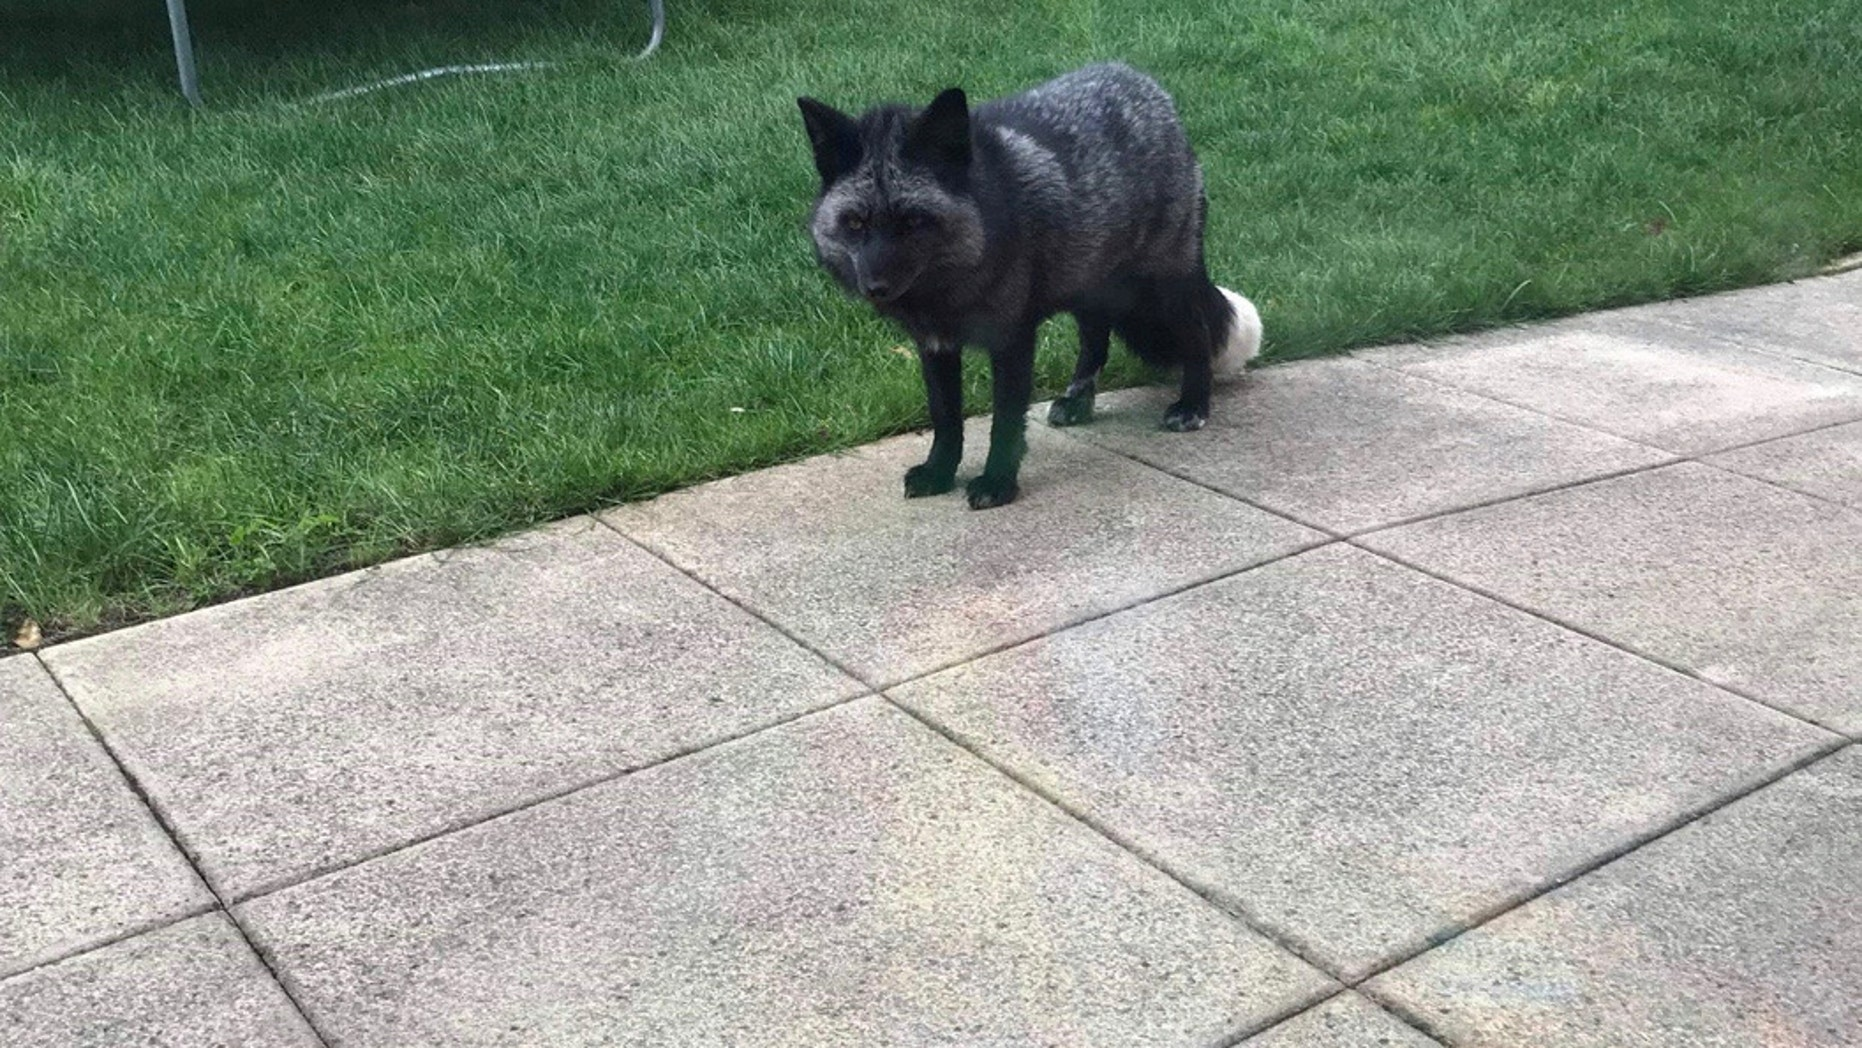 Rare admission at RSPCA center after silver fox found in Cheshire garden. (Credit: SWNS)